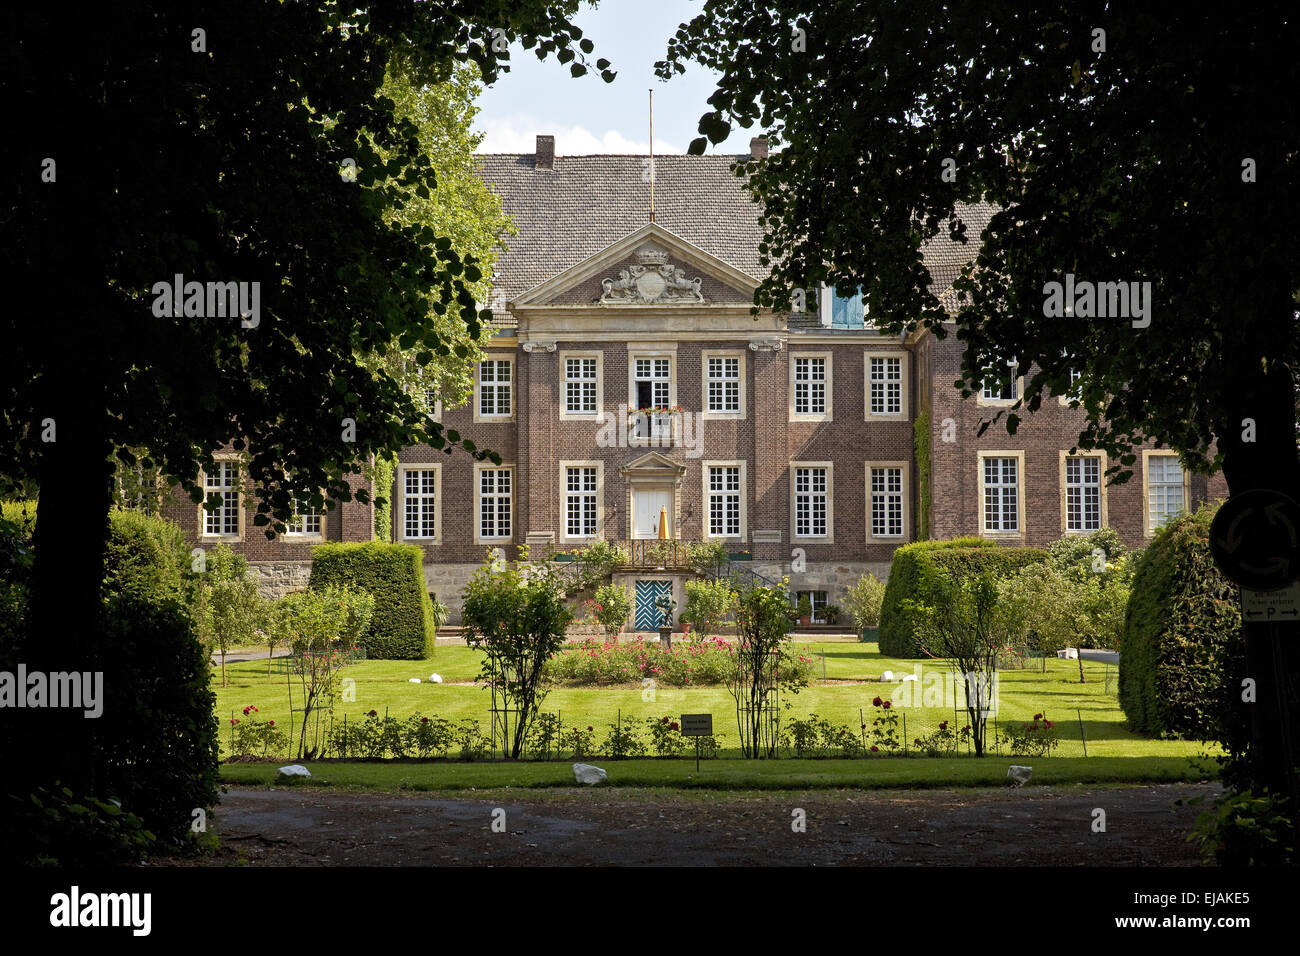 Steinfurt castle, Drensteinfurt, Germany Stock Photo